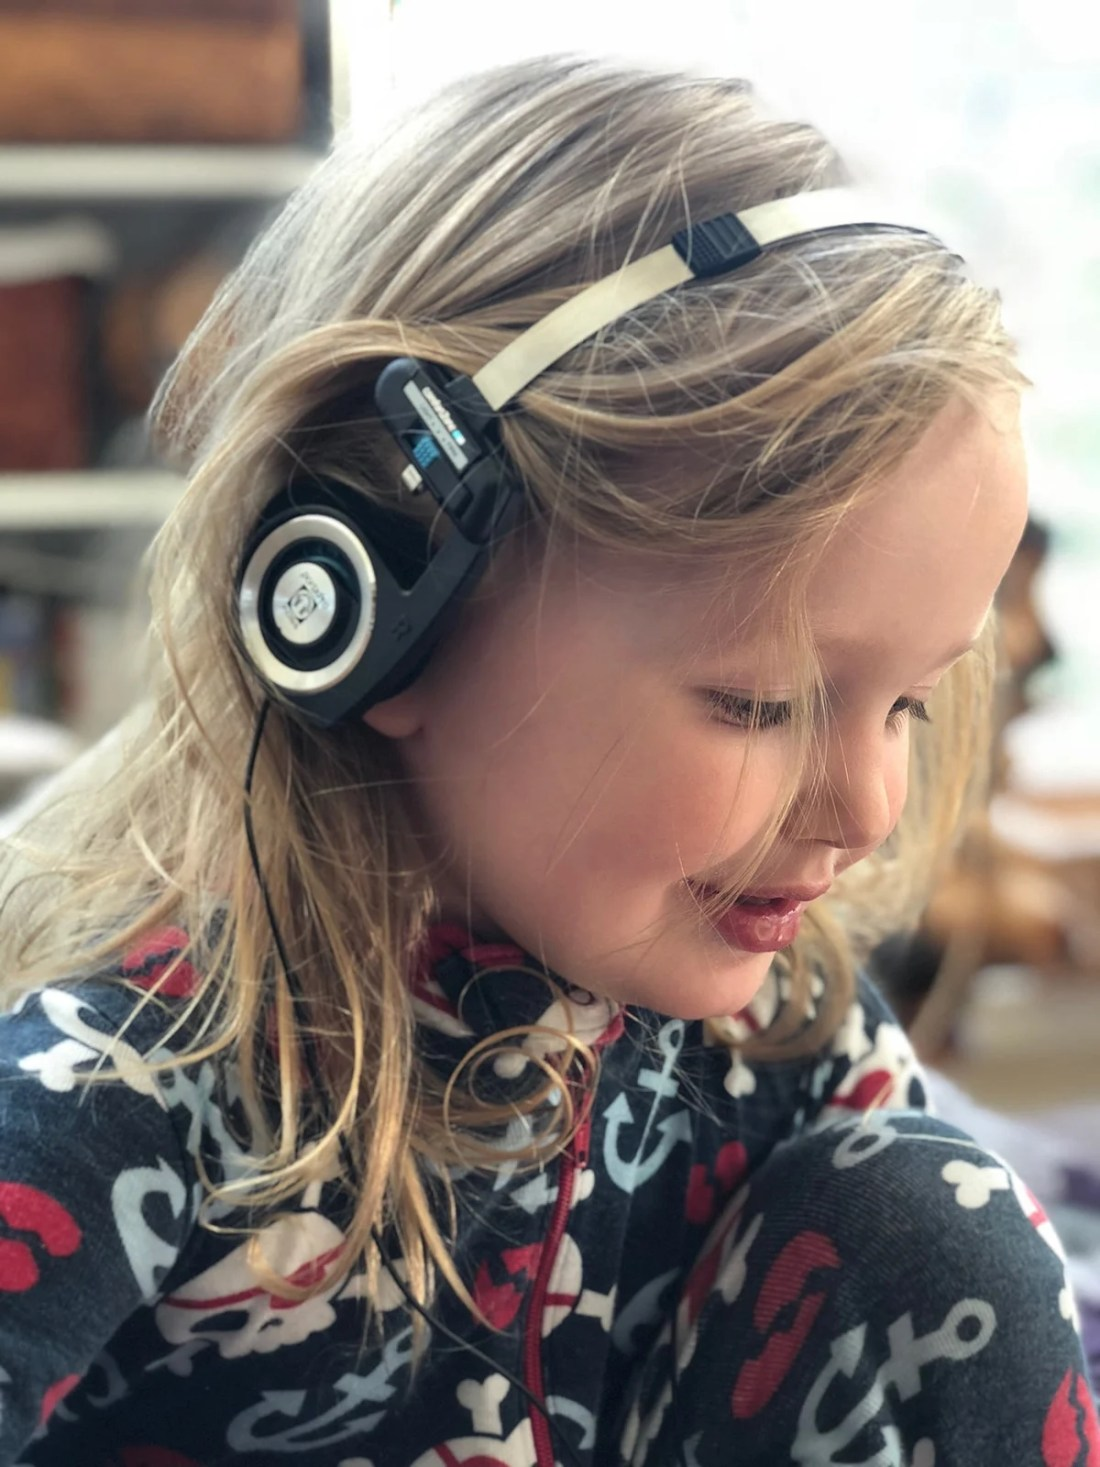 My three-year-old experiencing some of hisfirst headphone listening with the original Porta Pro. It's the perfect gateway to high-quality personal audio.